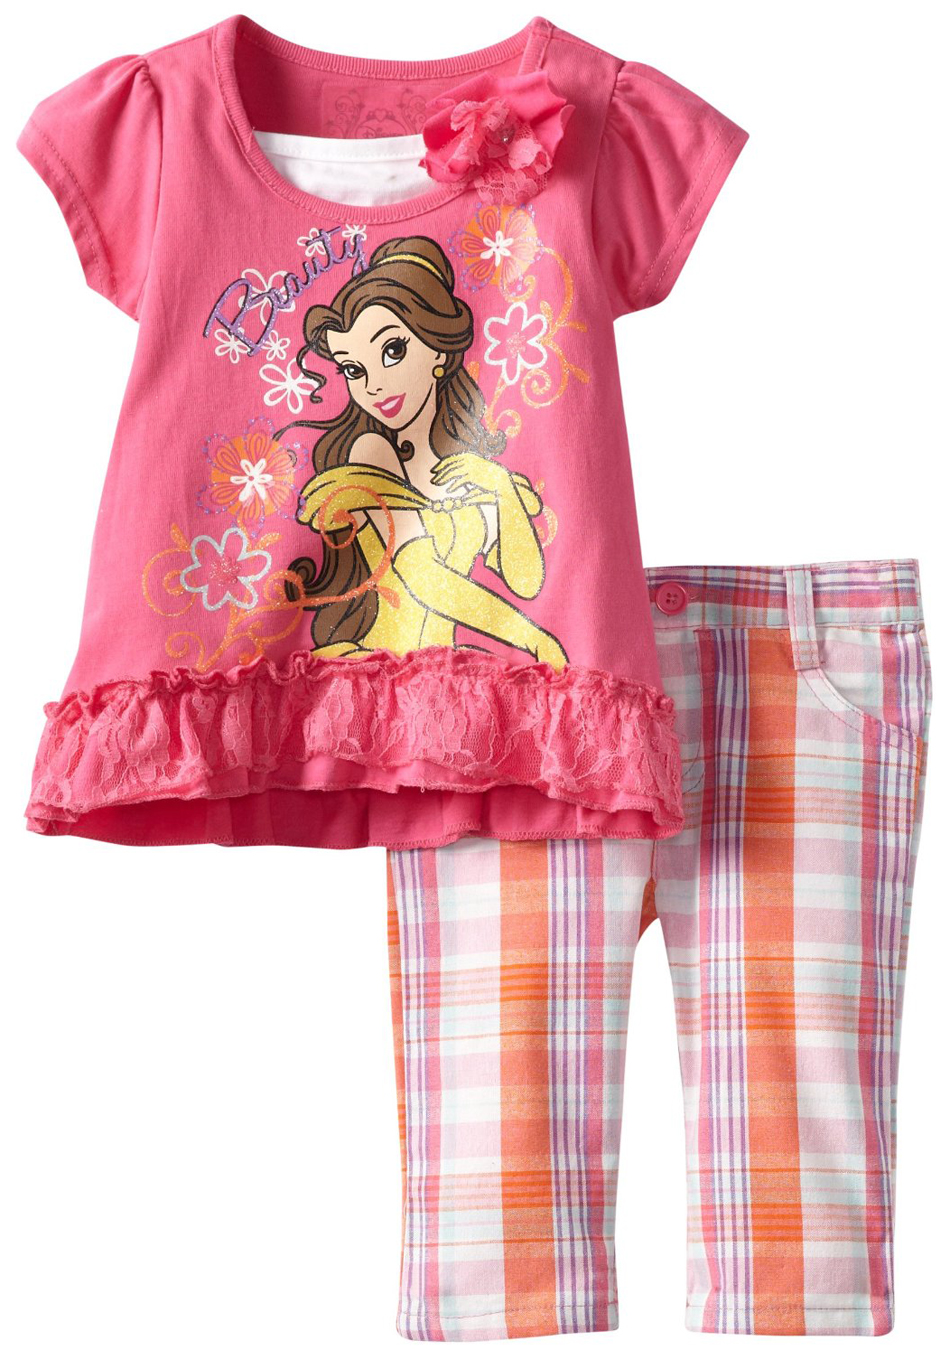 Disney Princess Little Girls' 2 Piece Pink Lace Top Plaid Capri Pants Set at Sears.com